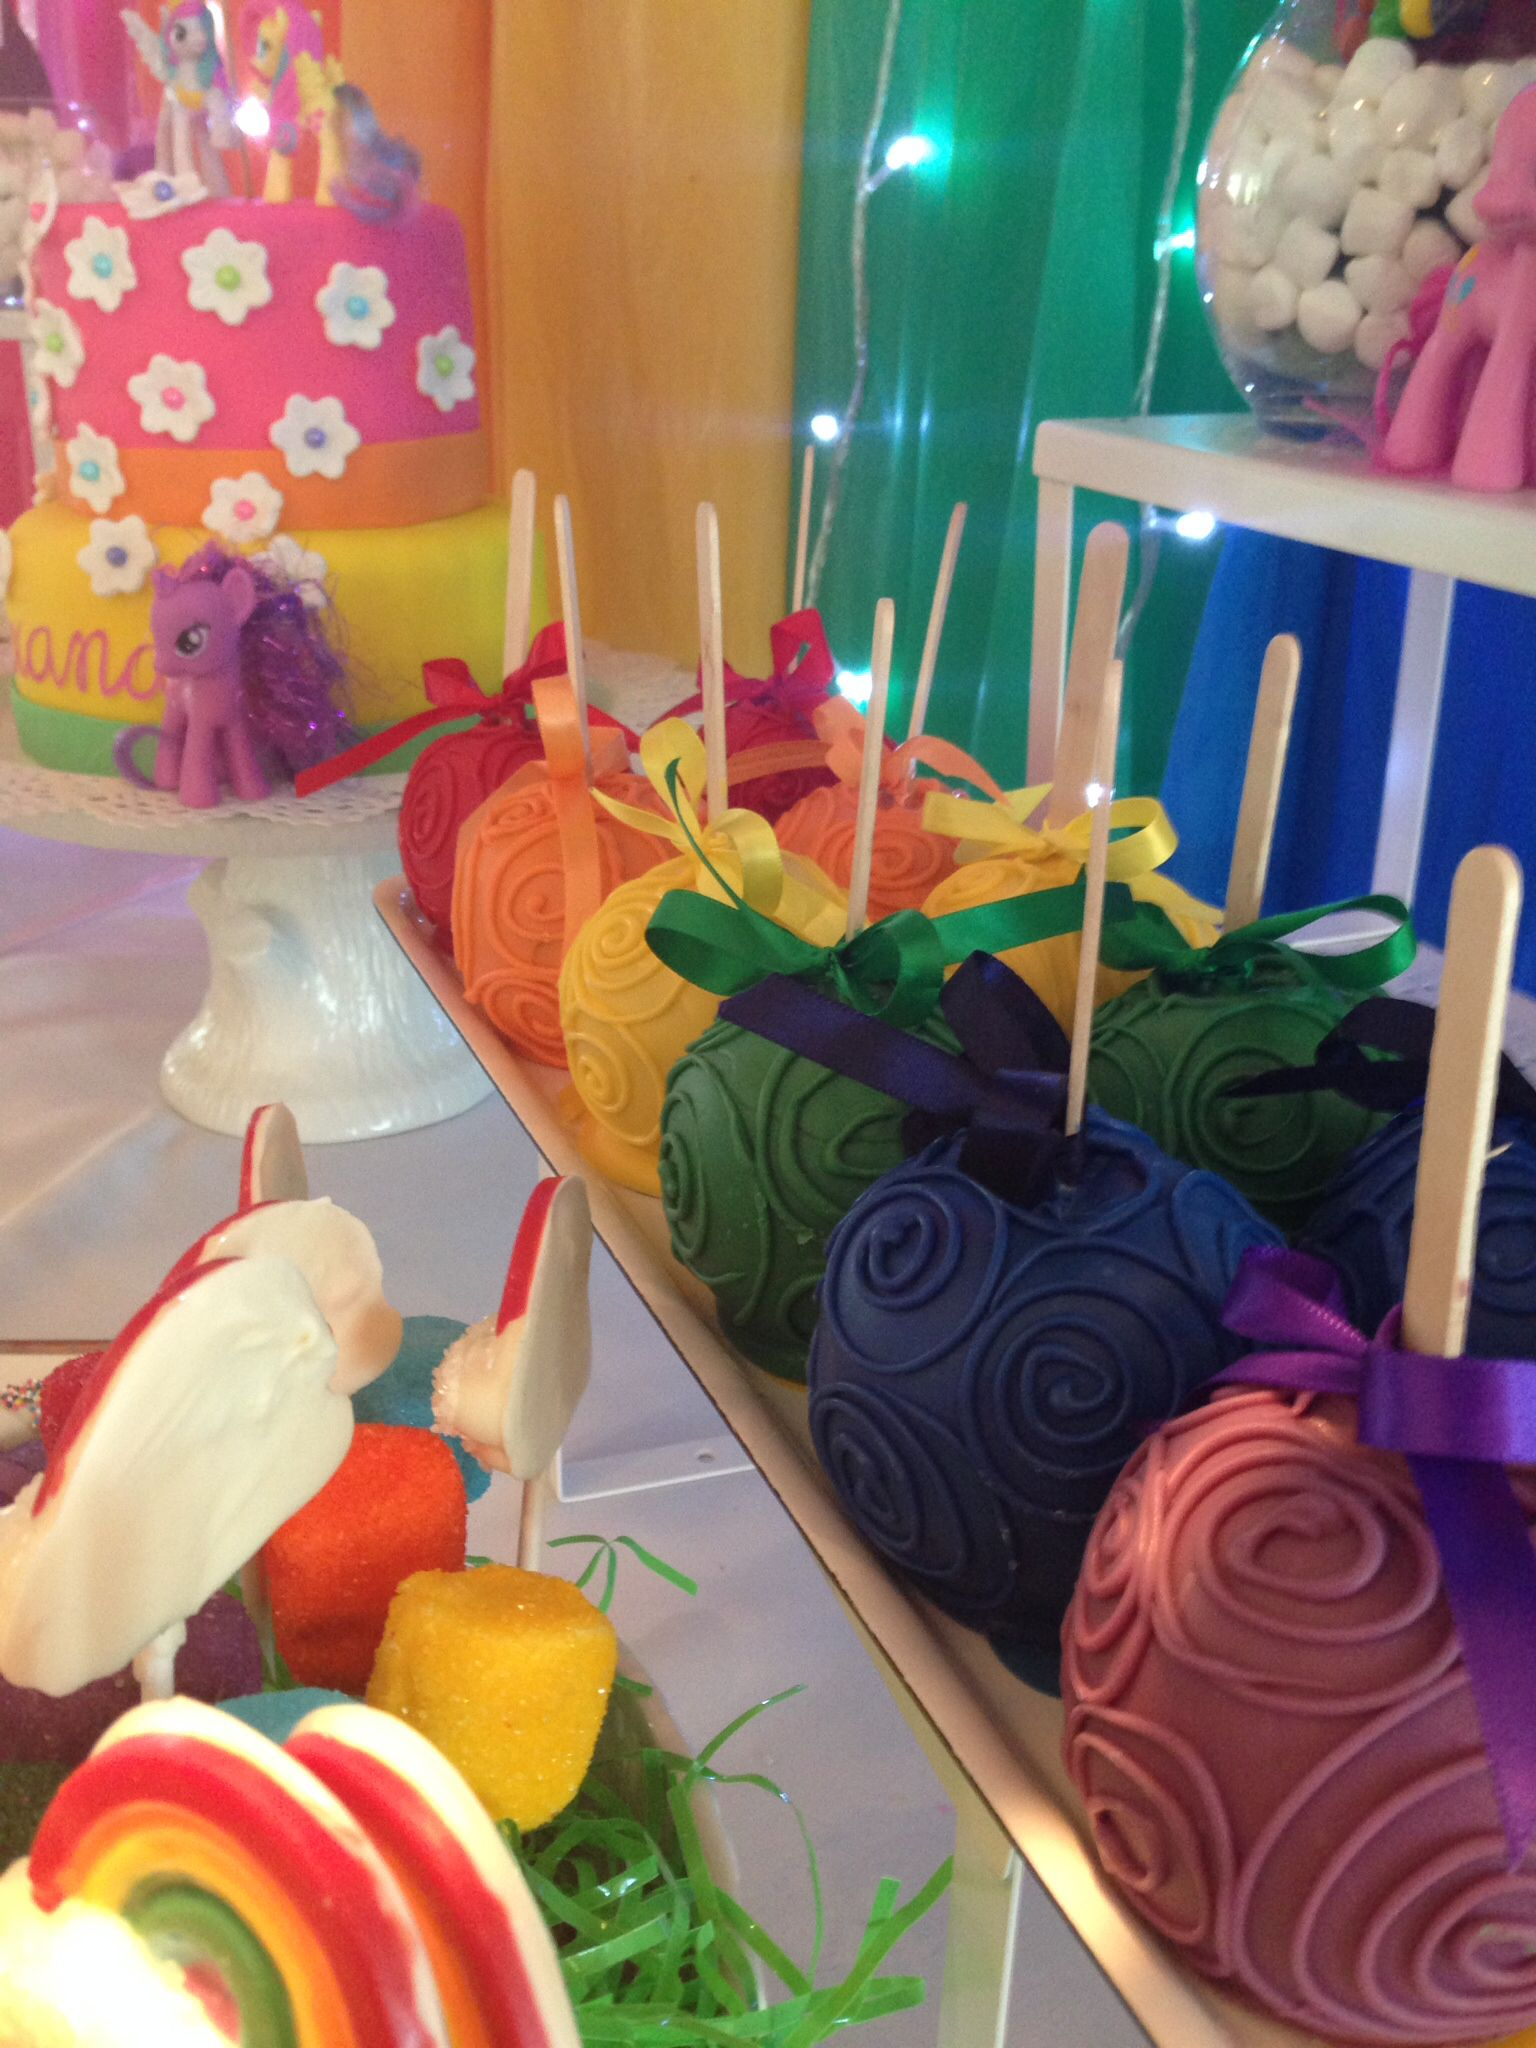 Hand Decorated Chocolate Dipped Apples My Little Pony Rainbow